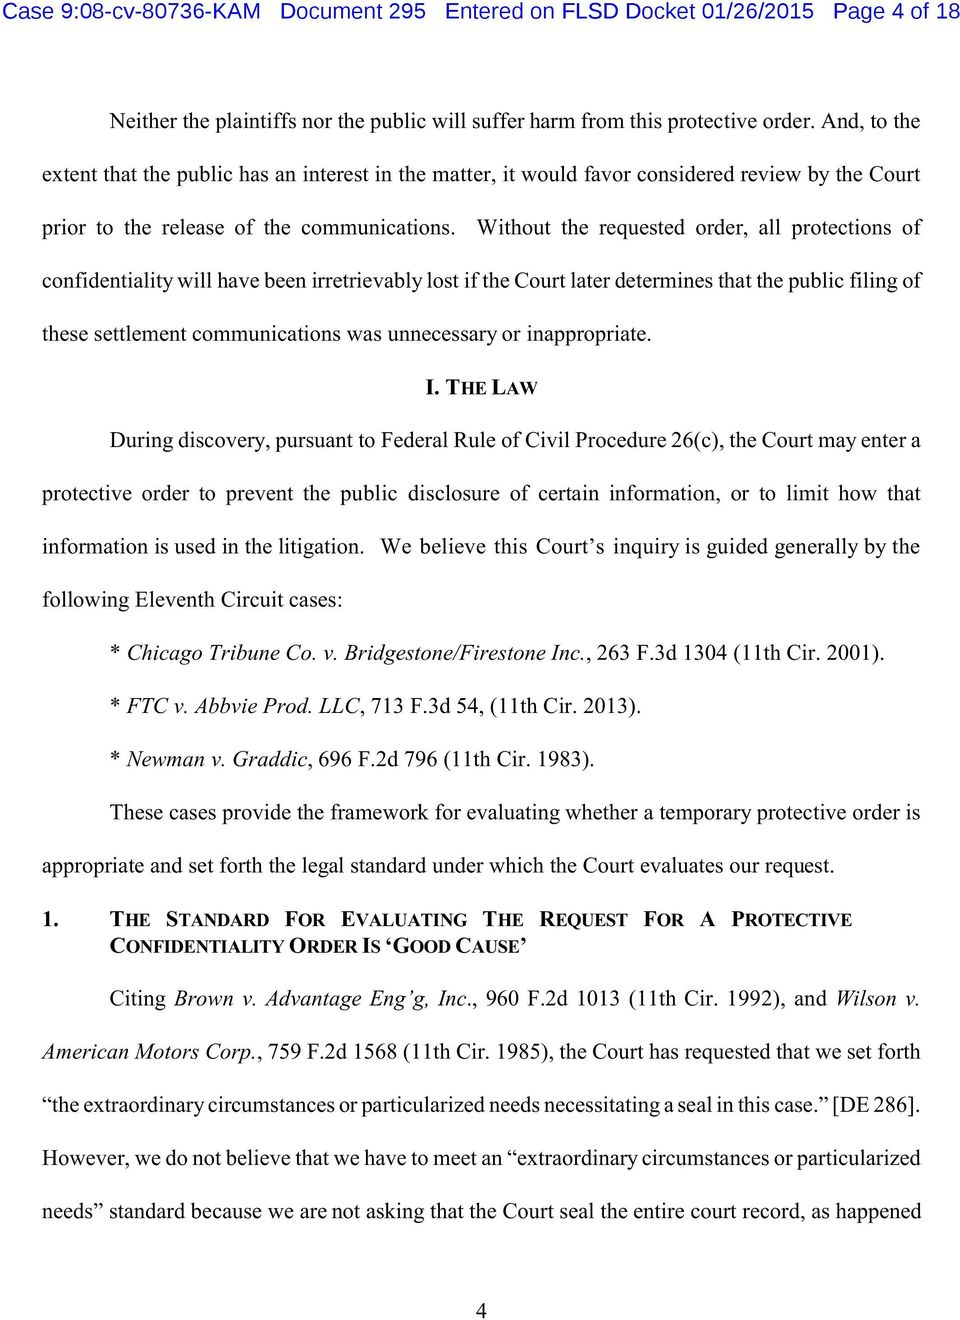 Without the requested order, all protections of confidentiality will have been irretrievably lost if the Court later determines that the public filing of these settlement communications was